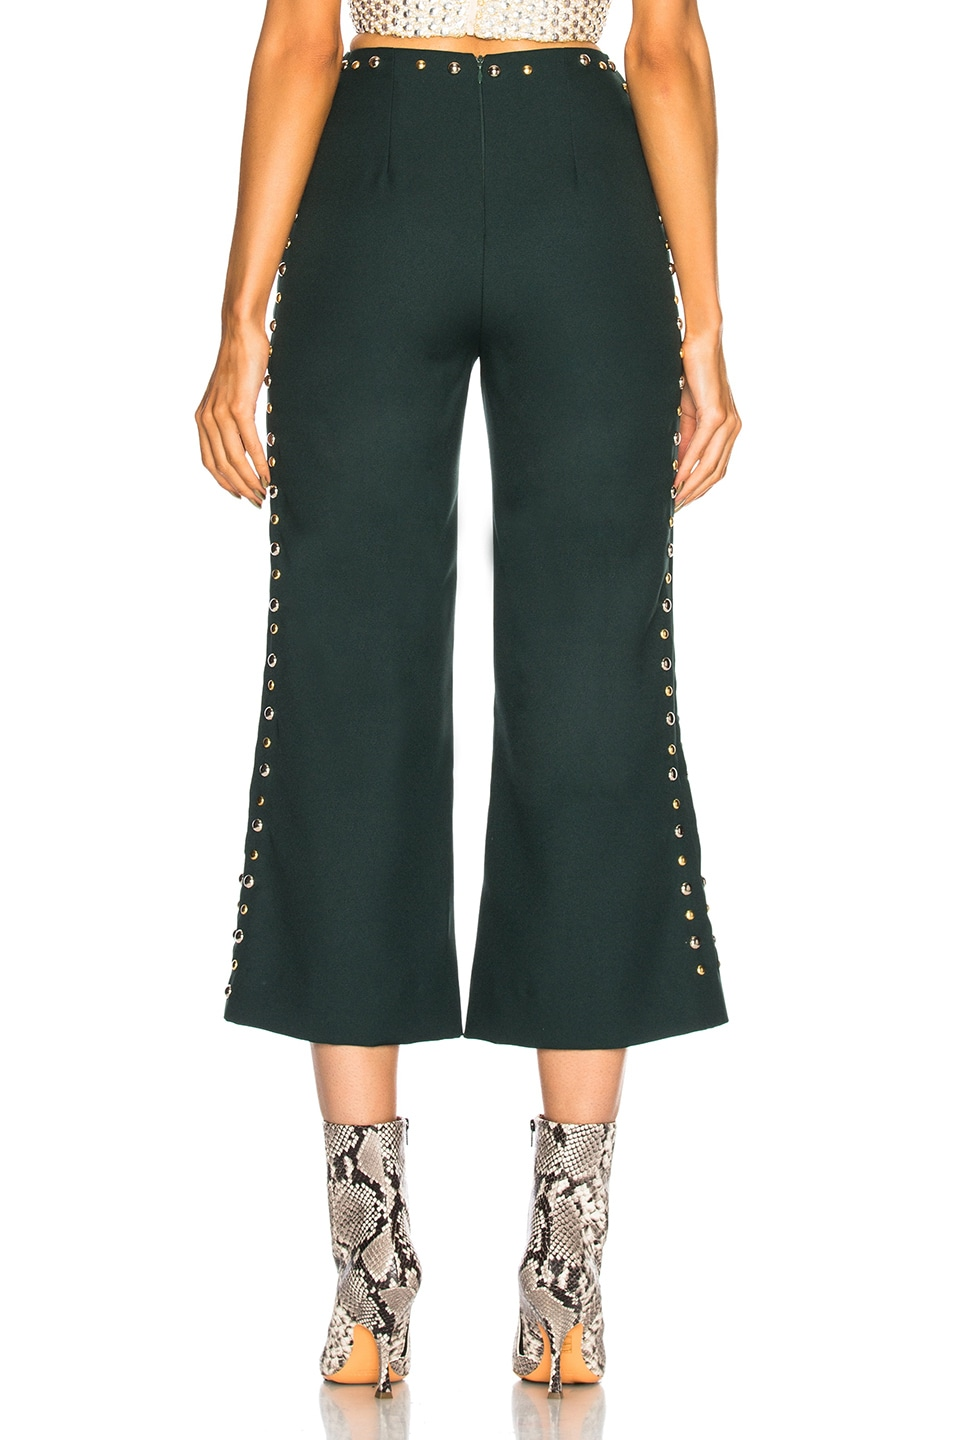 Image 3 of Rodarte Floral Metallic Embroidery & Studded Detail Pants in Dark Green & Gold